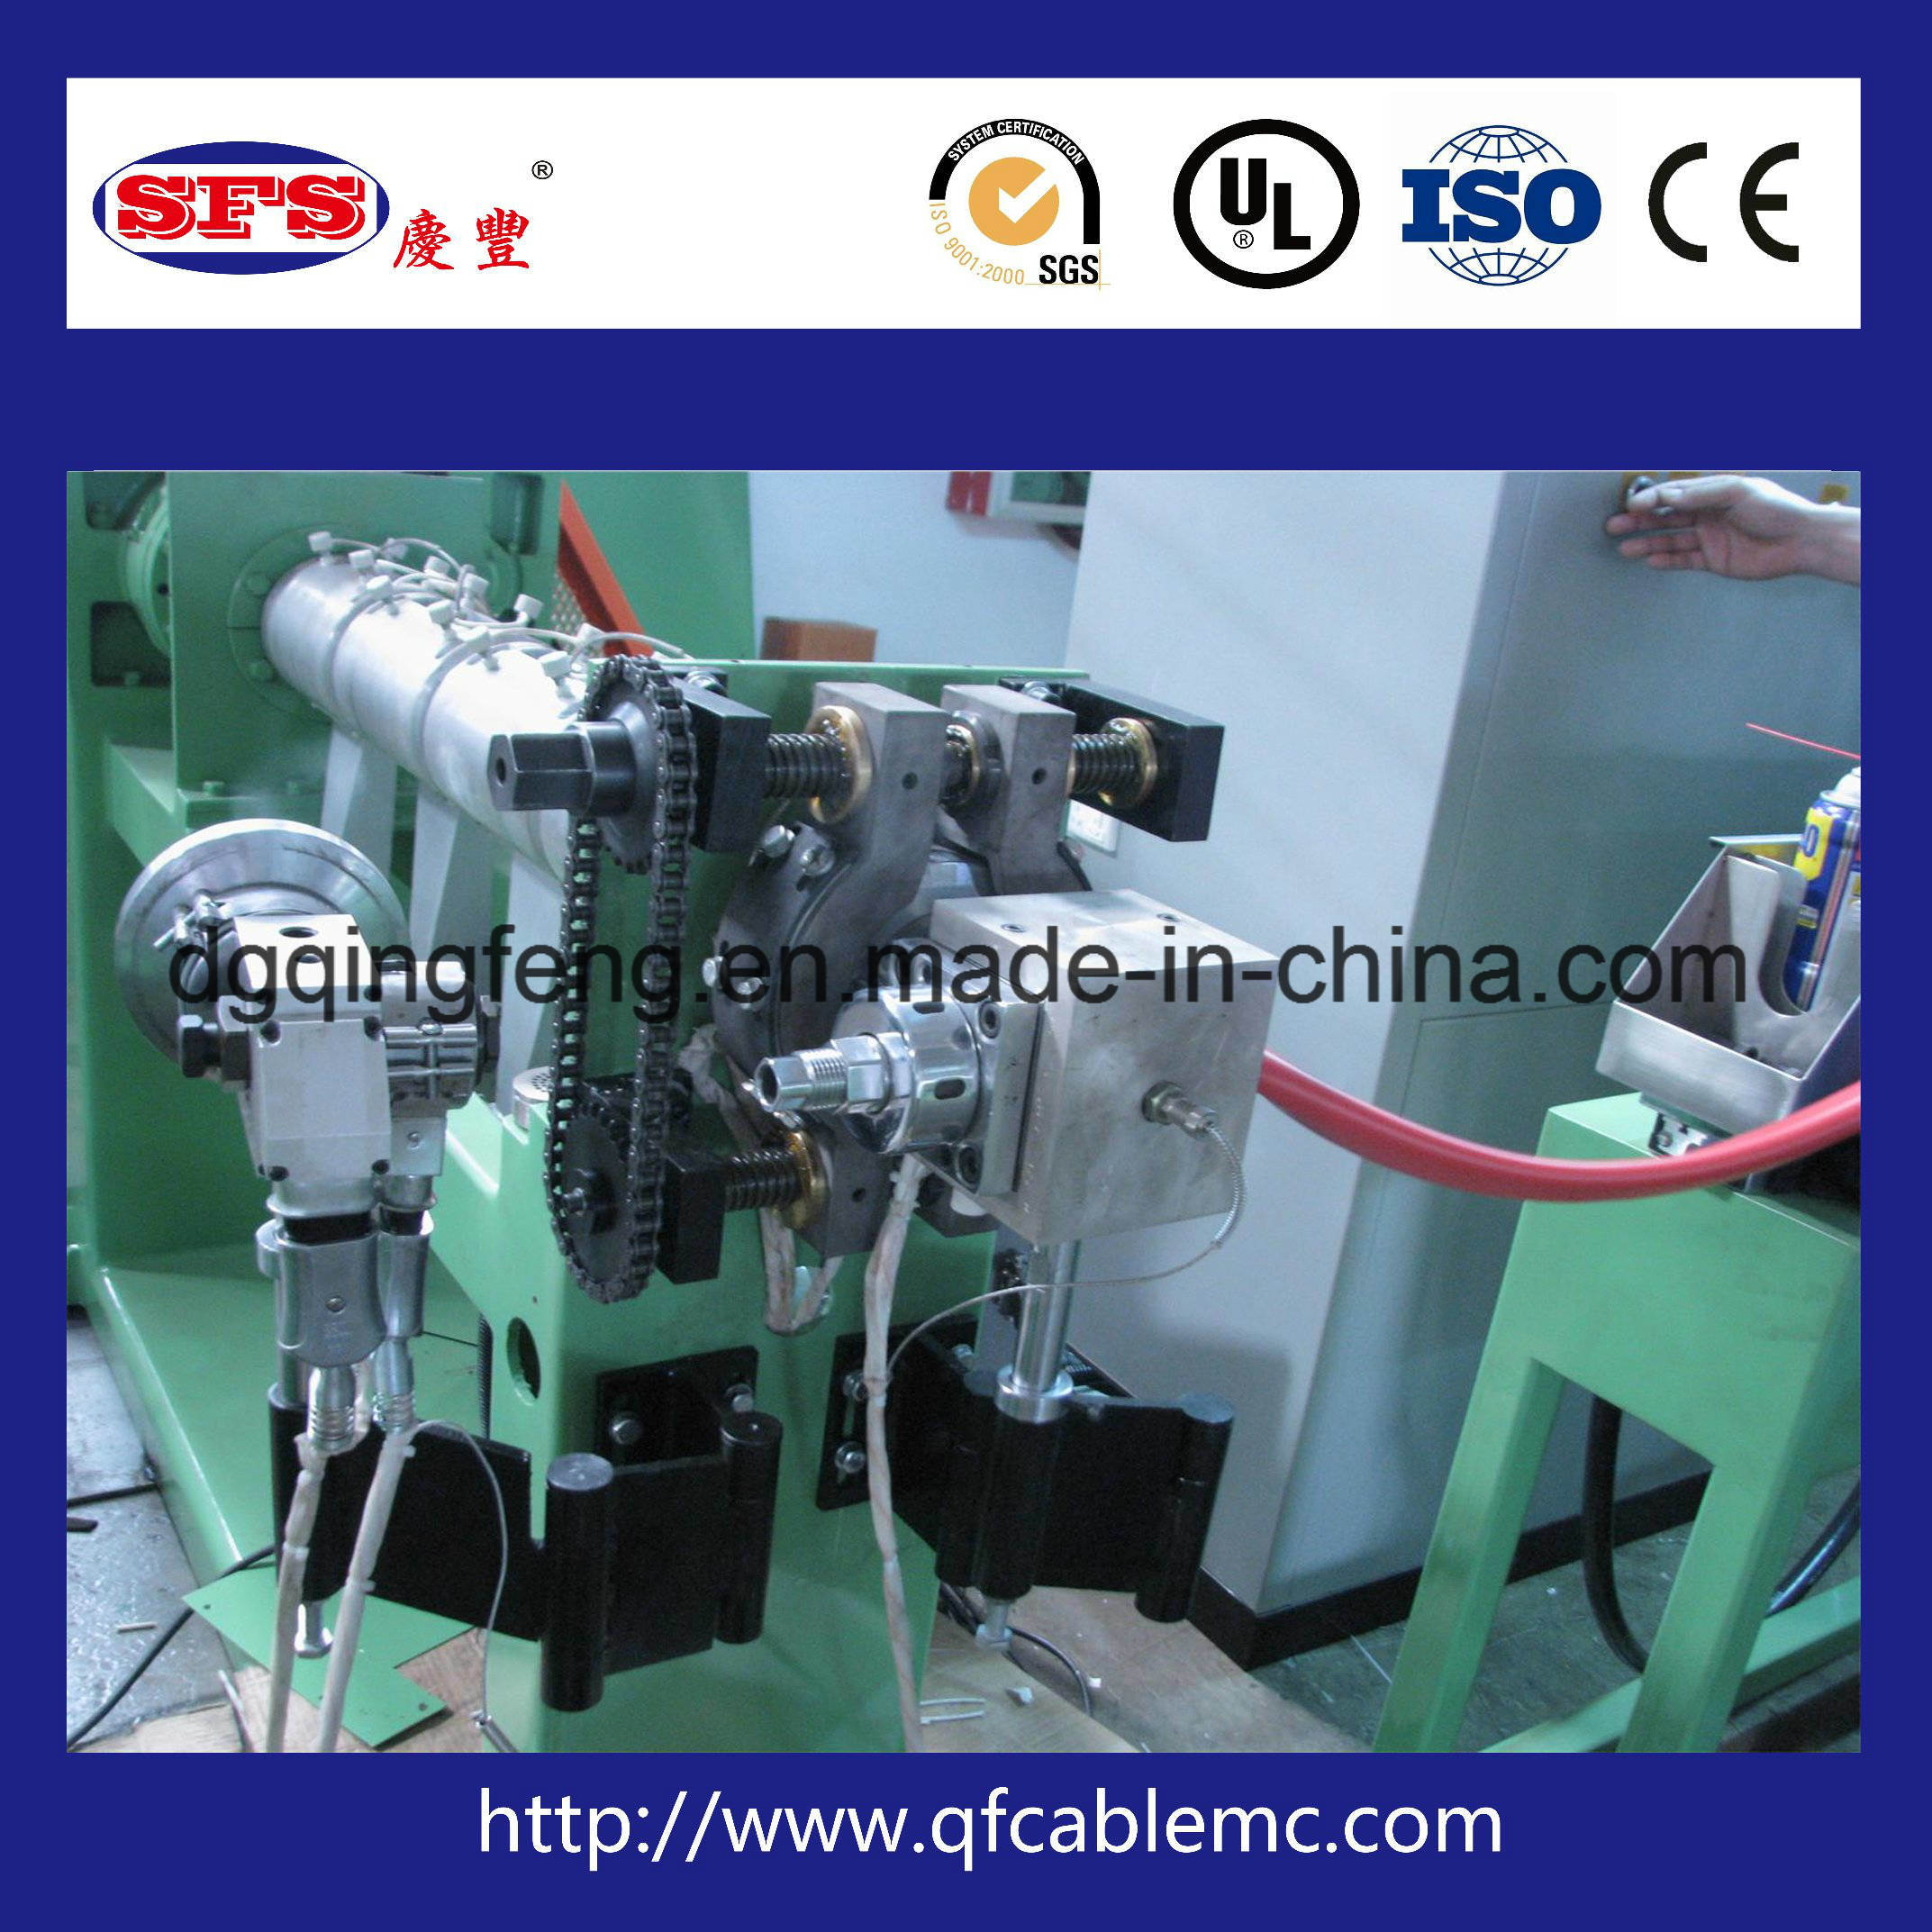 China Extruding Usage Electrical Cable Manufacturing Machine - China ...